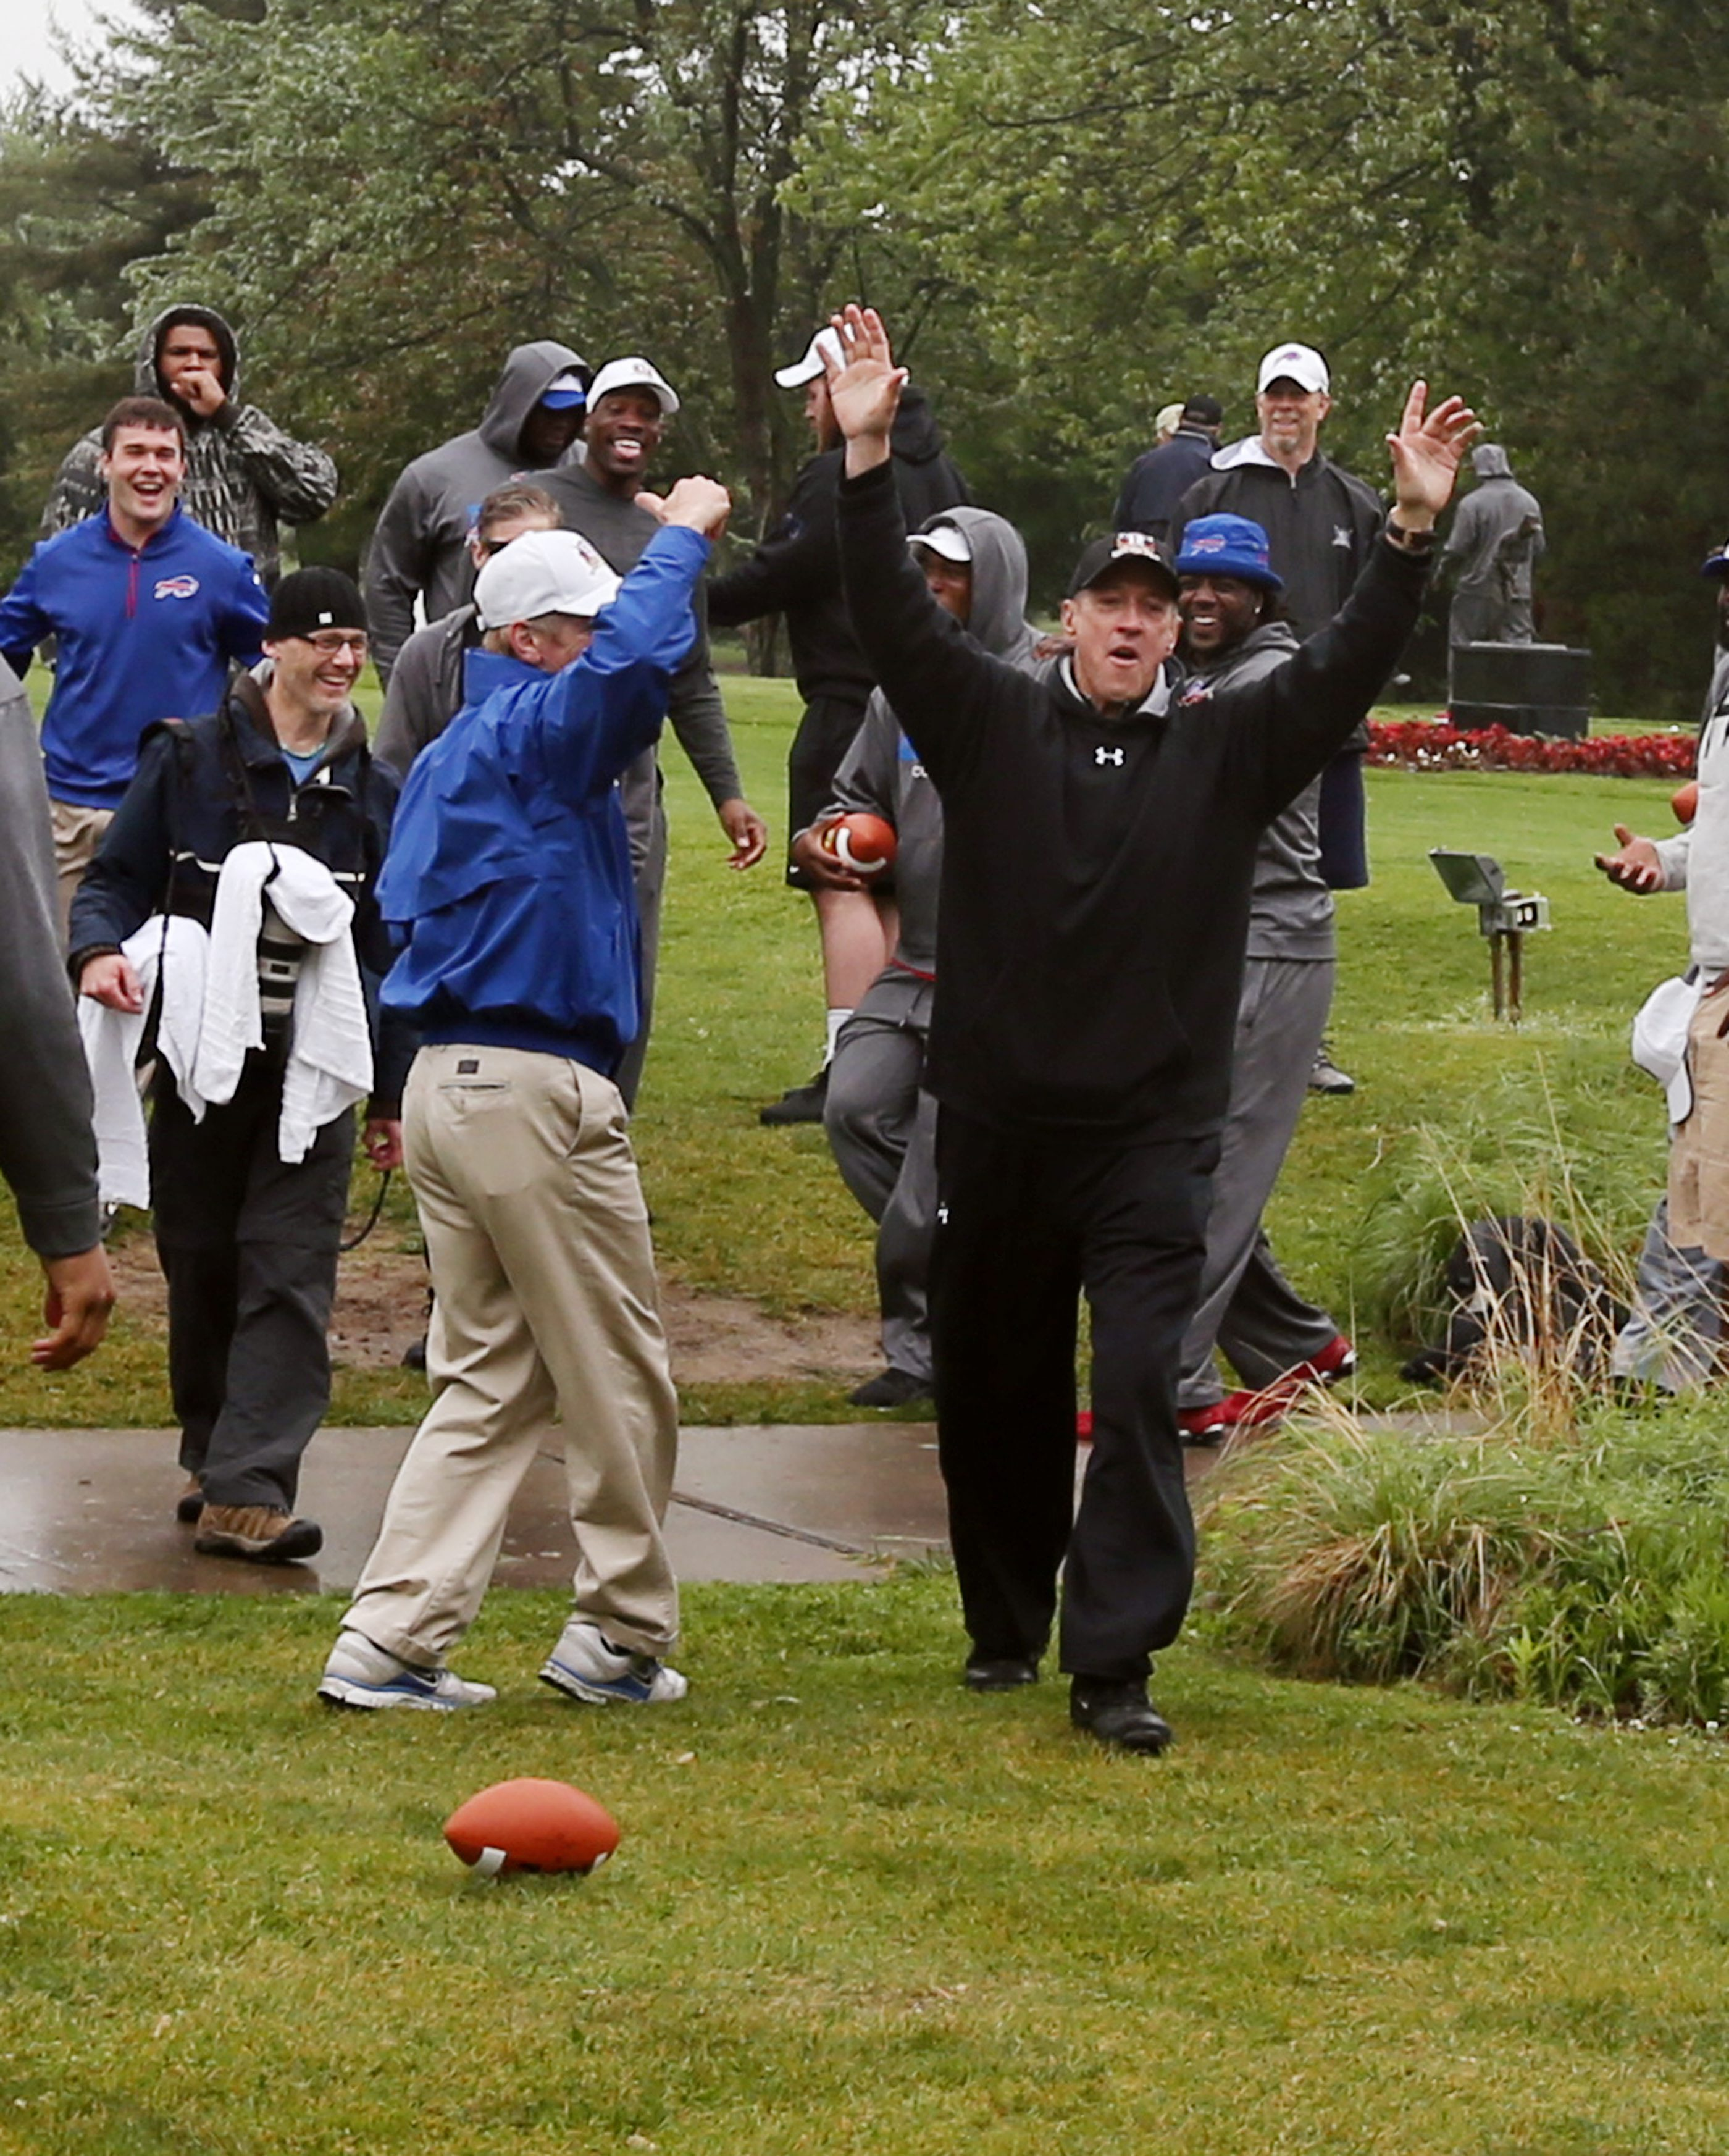 One throw, one score for Jim Kelly as he celebrated life, teammates and football at his own Jim Kelly's 29th Celebrity Classic golf tournament at Terry Hills Golf Course. More photos on Picture Page, C8.